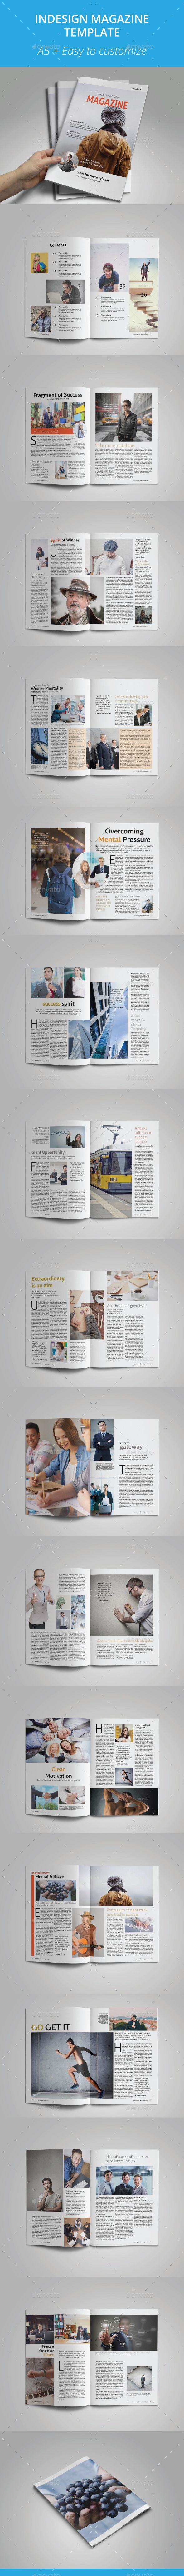 A5 Indesign Magazine — InDesign INDD #A5 Magazine #multipurpose • Available here → https://graphicriver.net/item/a5-indesign-magazine/16396046?ref=pxcr